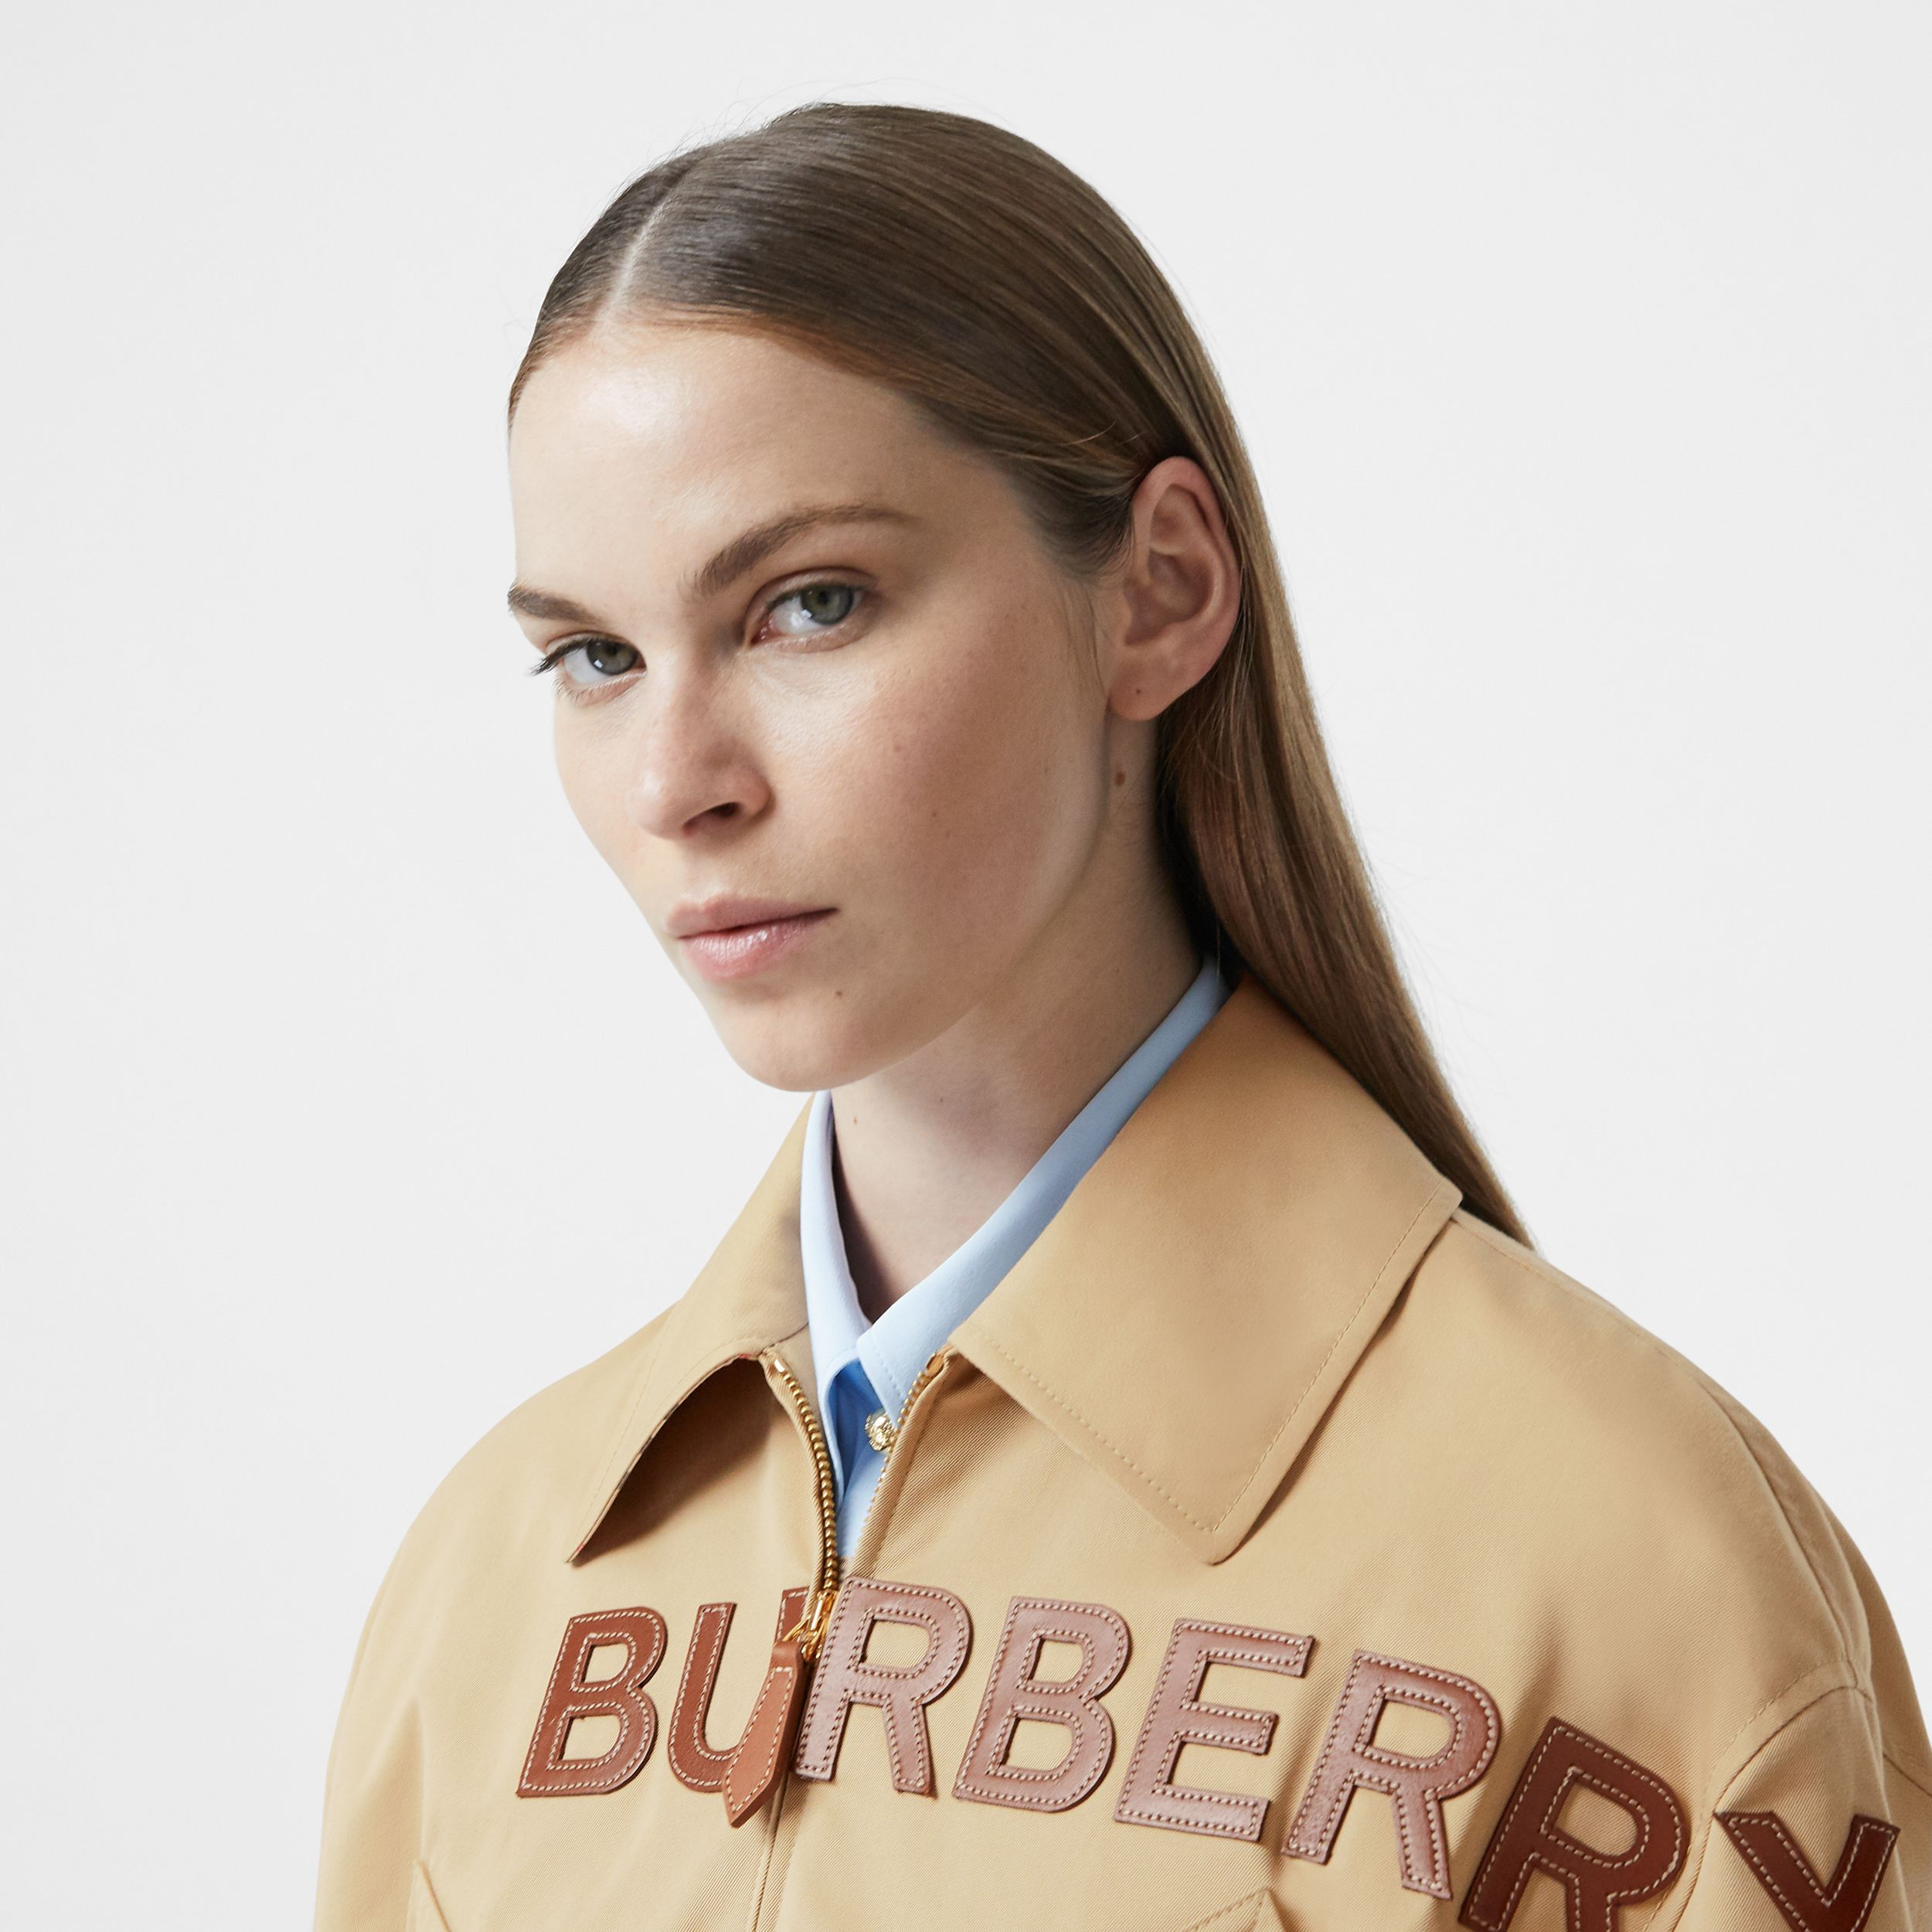 Leather Horseferry Appliqué Cotton Riding Jacket in Honey - Women | Burberry - 2